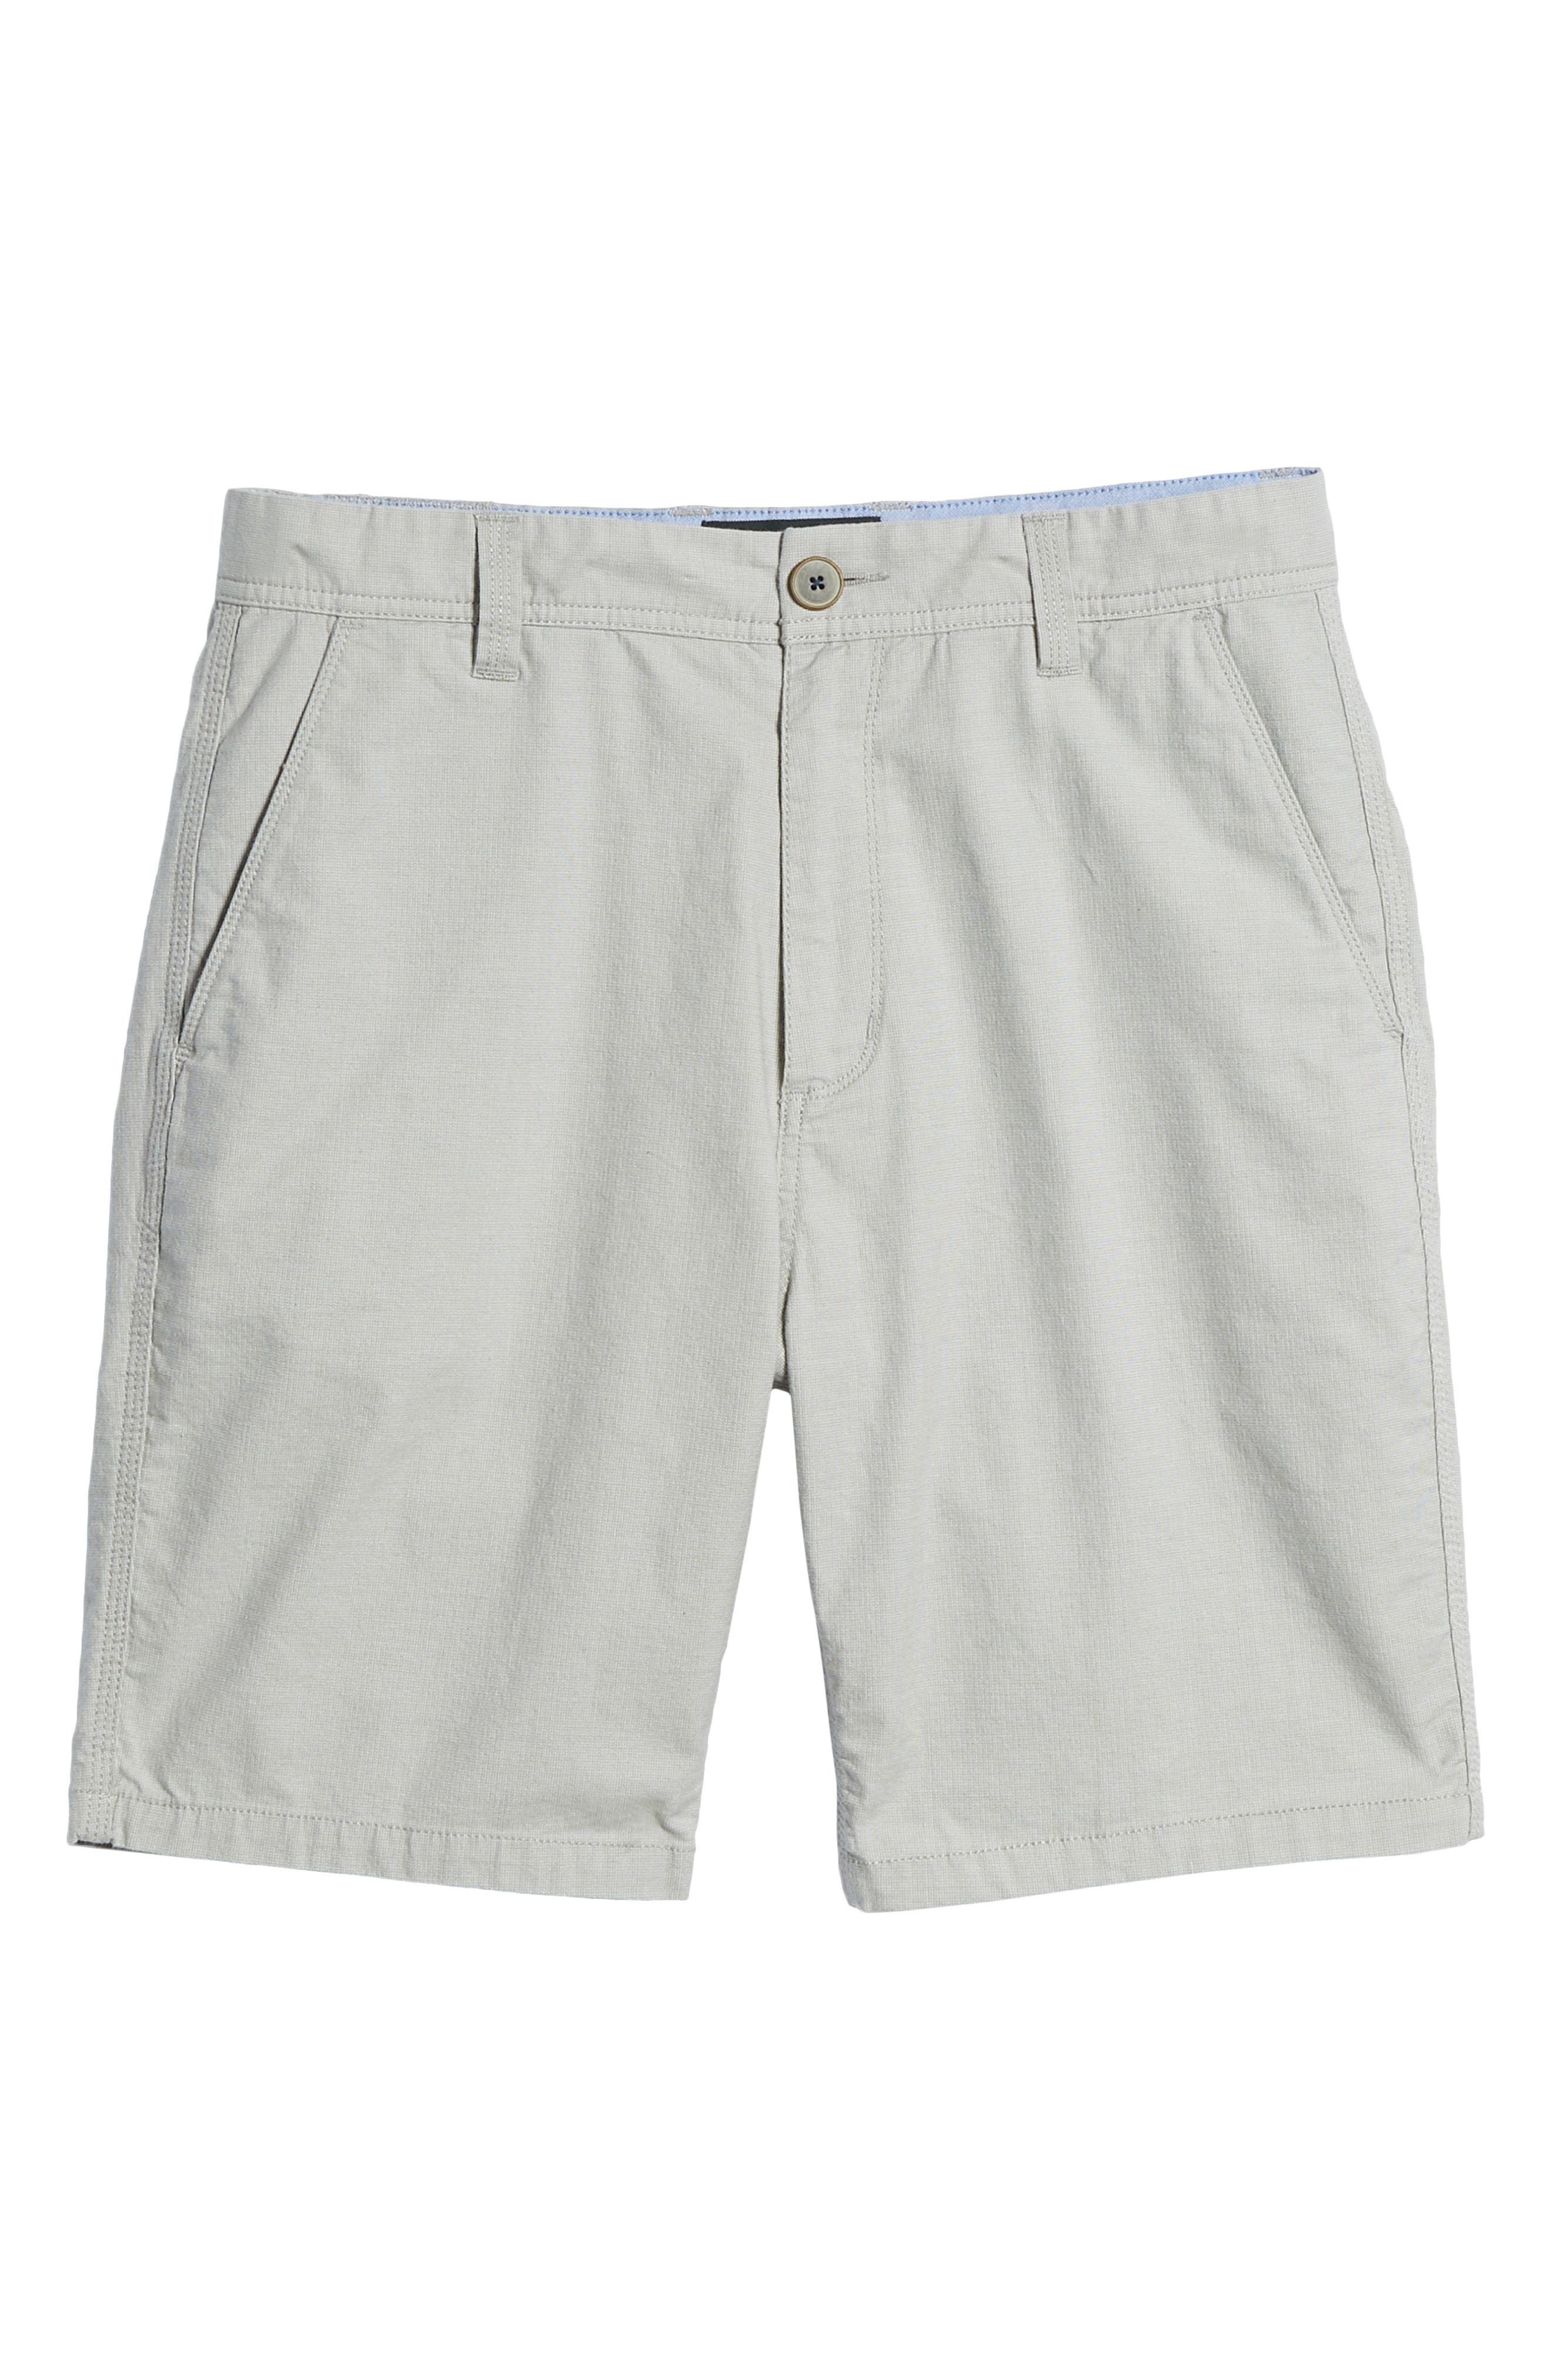 Millwater Shorts,                             Alternate thumbnail 6, color,                             SAND